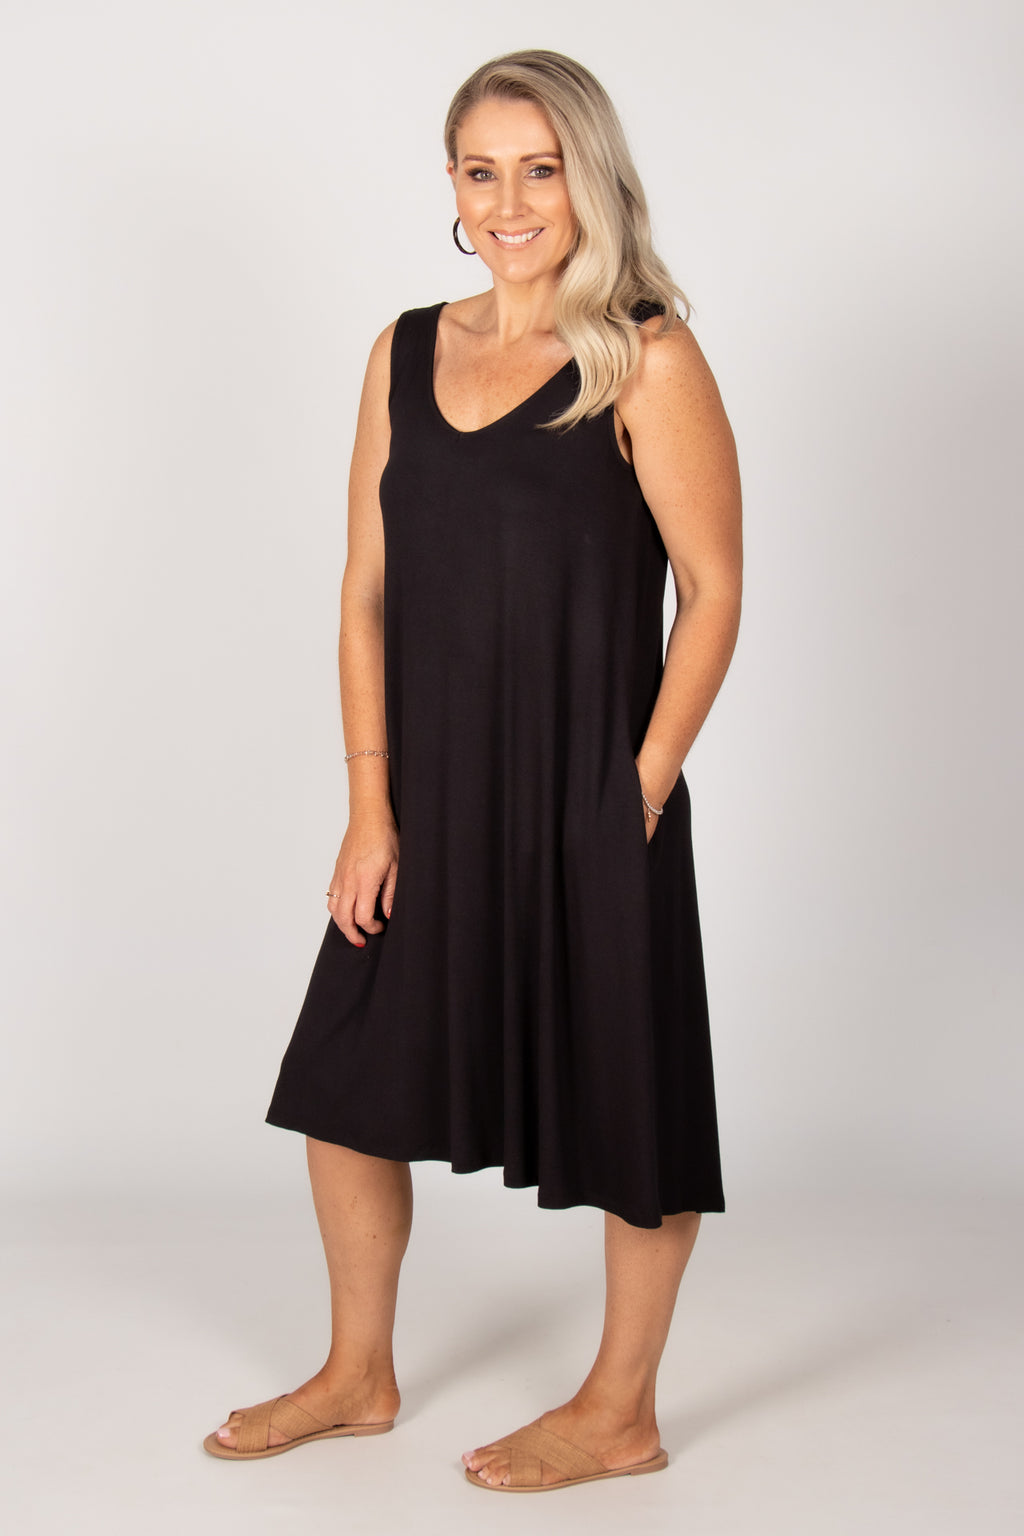 Oman Dress in Black